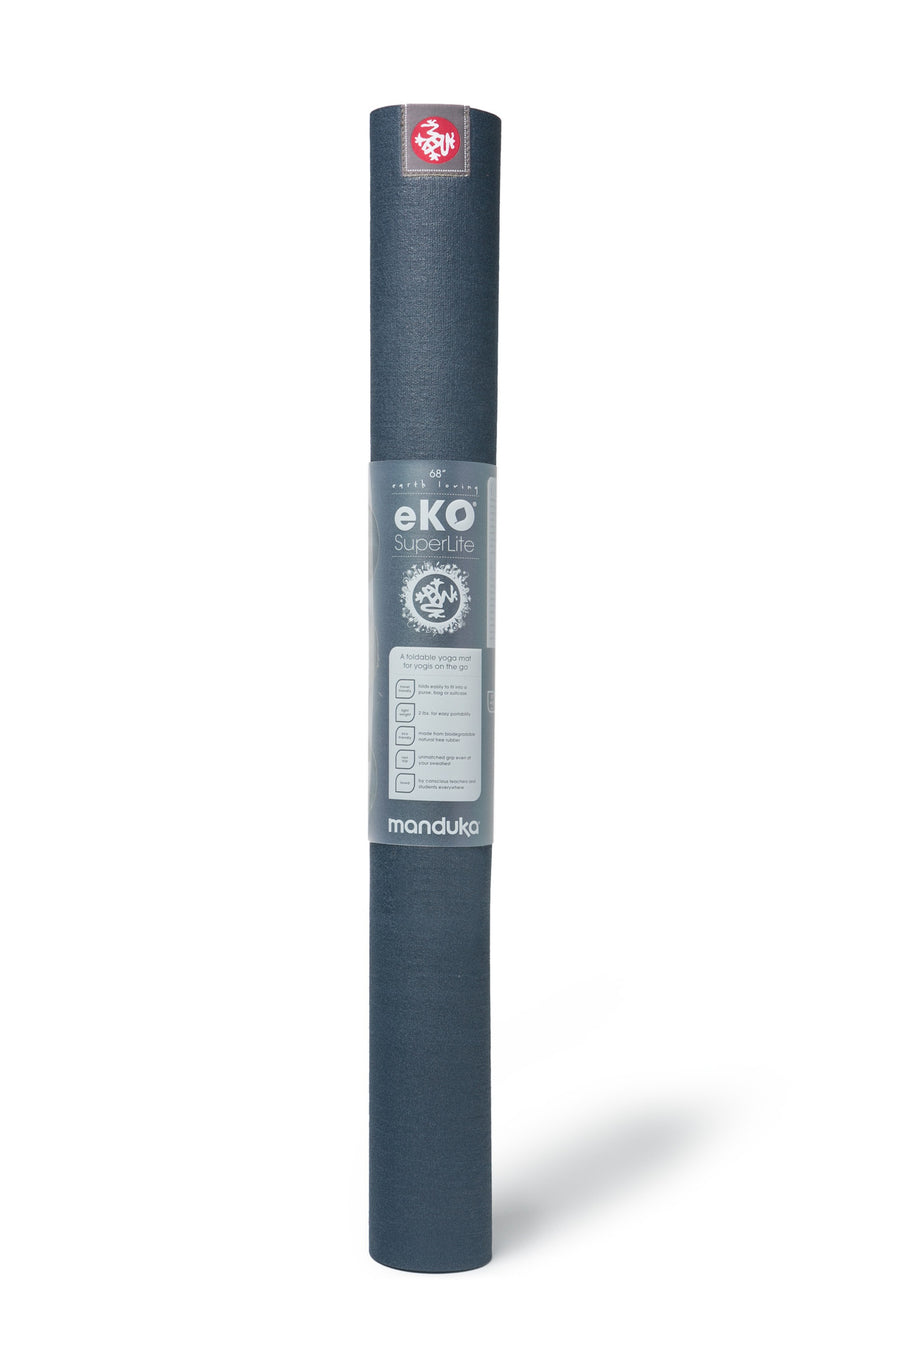 Manduka - MANDUKA eKO SuperLite Travel Mat - Midnight - goyogi.dk